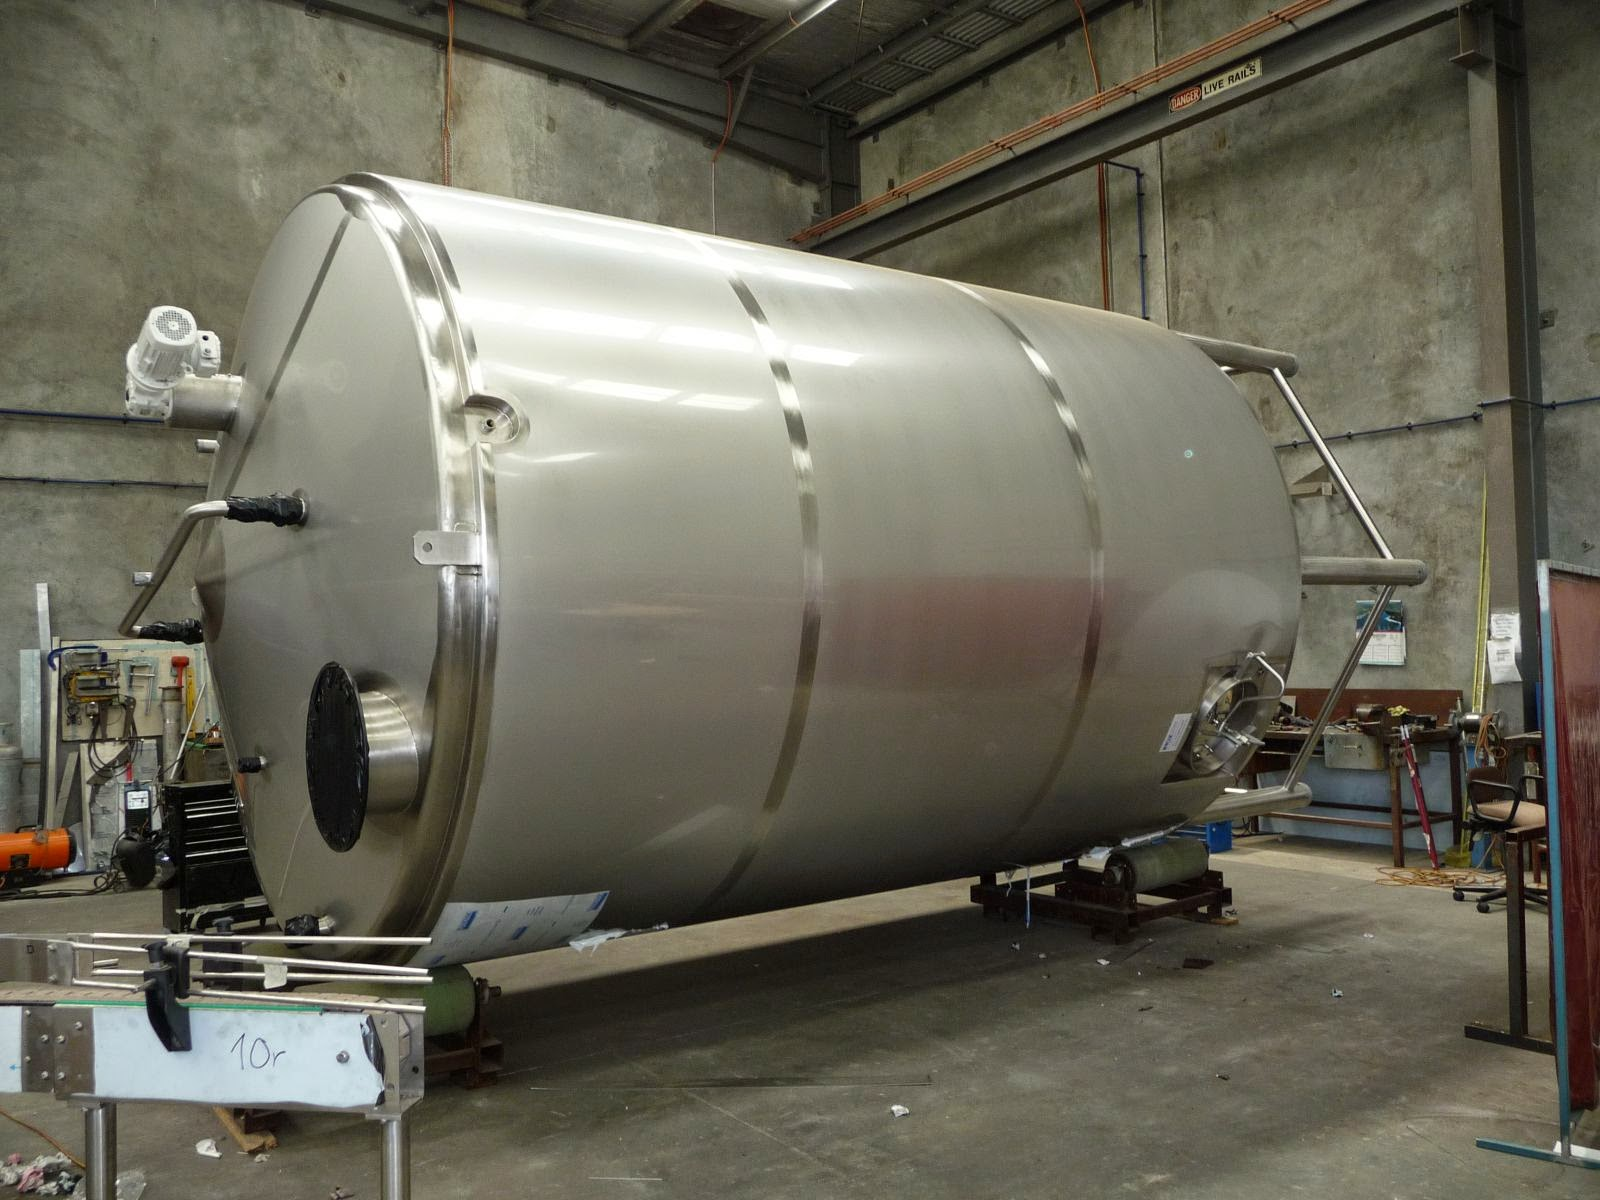 Stainless Steel Silos And Storage Tanks, Tanks & Mixers, Food Processing, Cooking & Product Cooling Equipment